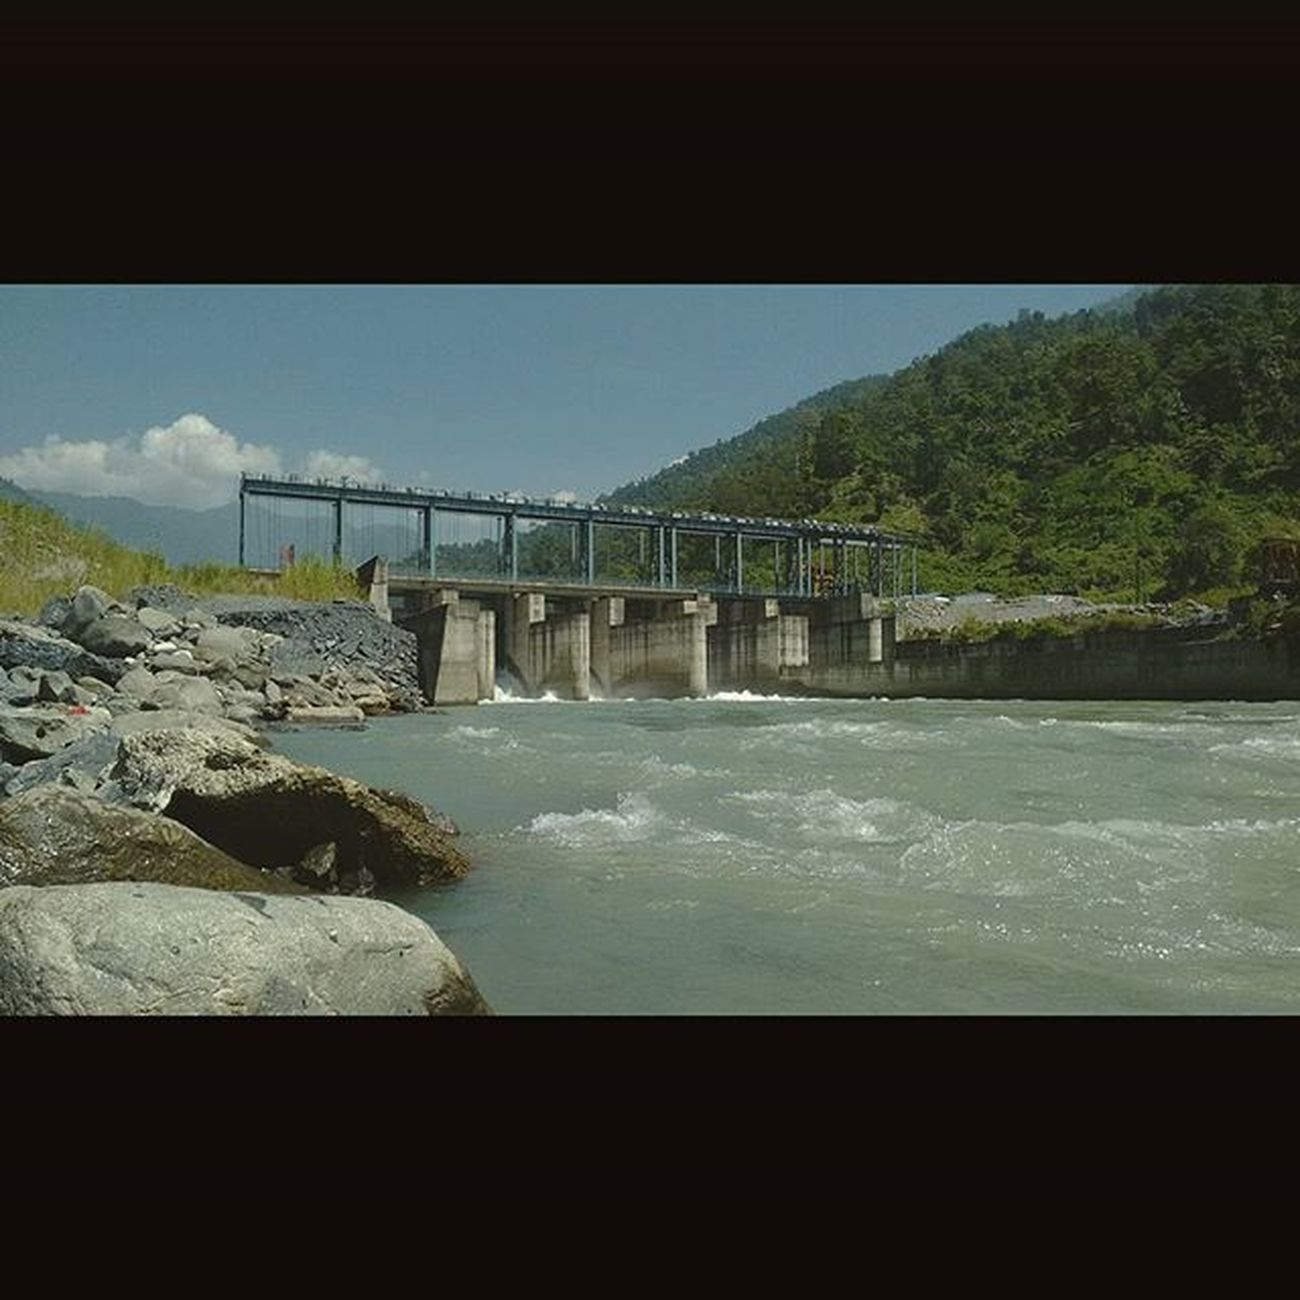 Today we shot at this place. Harsh sun,sweet cold river water melting down the glacier and some special sweet people who helped us with our shoot,will share them soon. Filming Mindtwisterfilms Rangeet Tributary Jorethang Northeast Sevensisters Indiapictures Incredibleindia Indiatravelgram